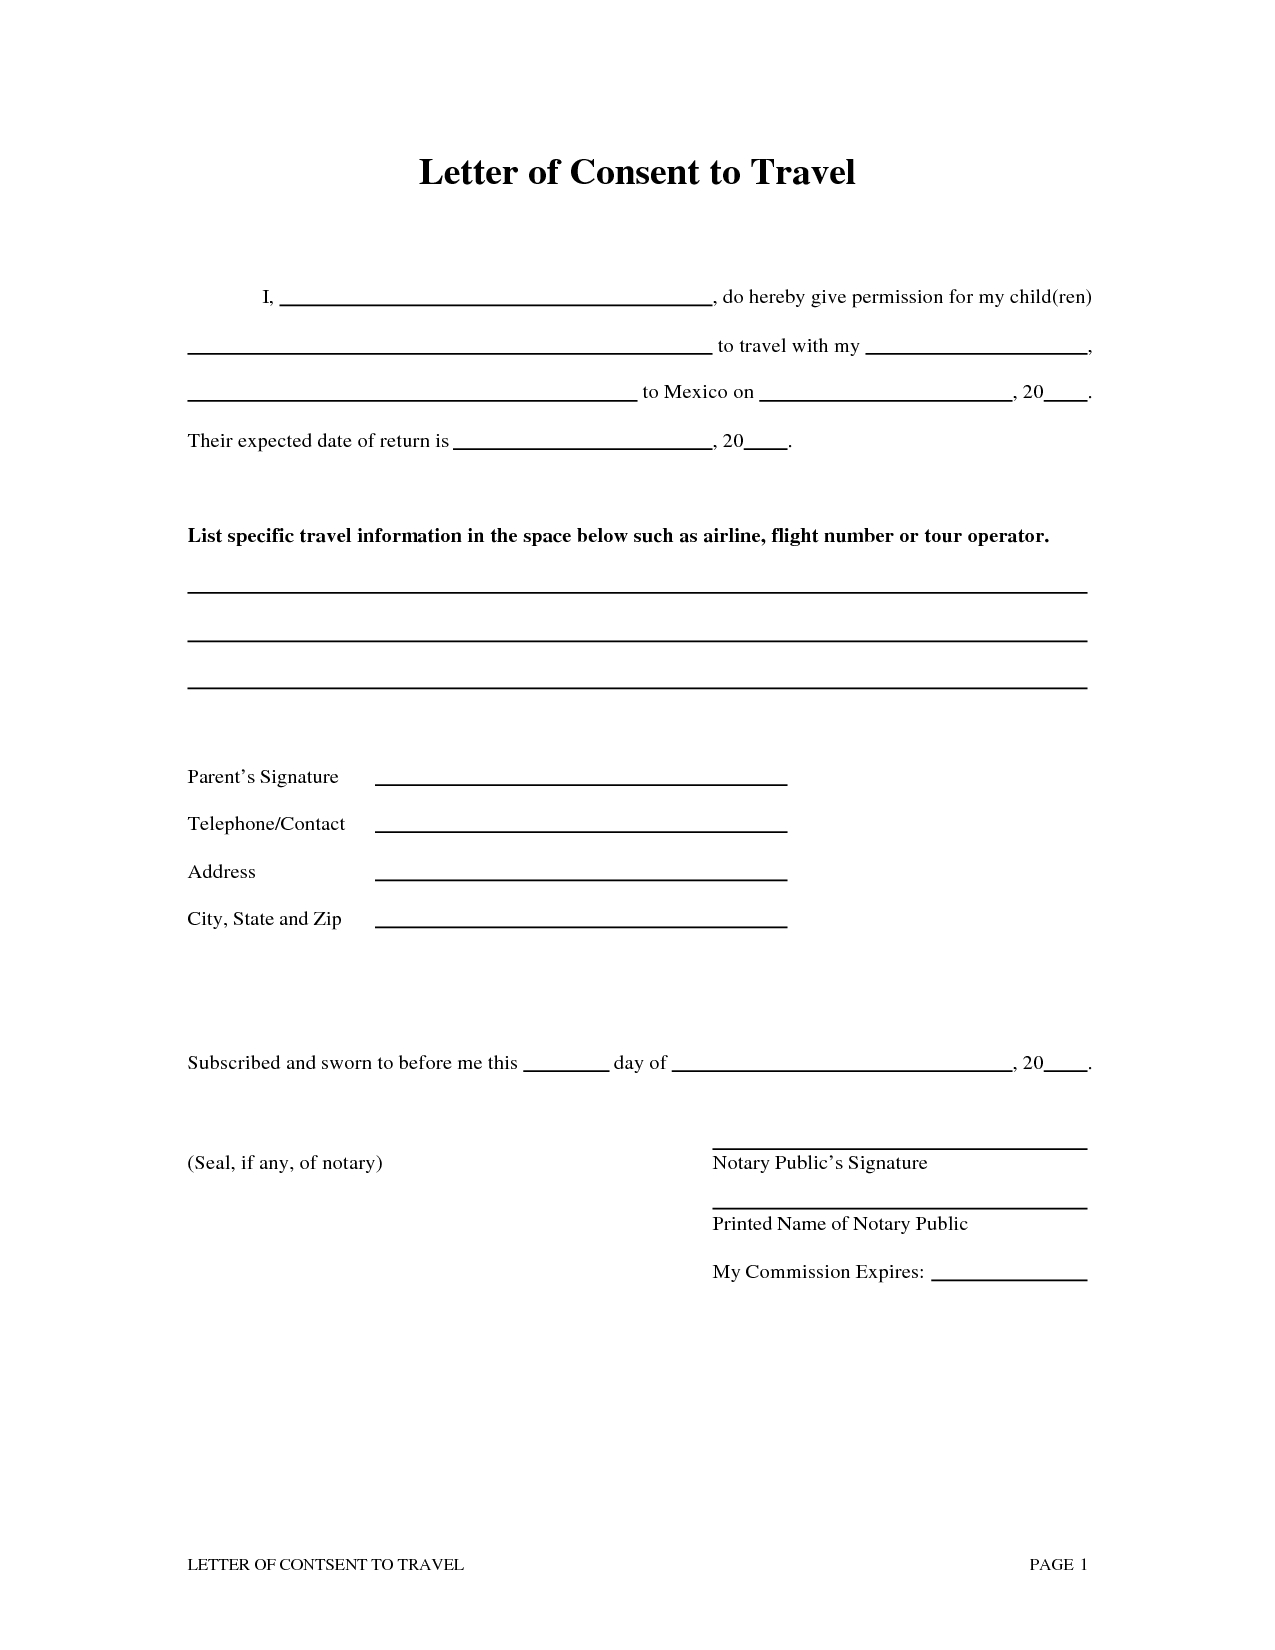 Notarized Travel Consent Letter Template - Inspirational Notarized Letter Template for Child Travel Your